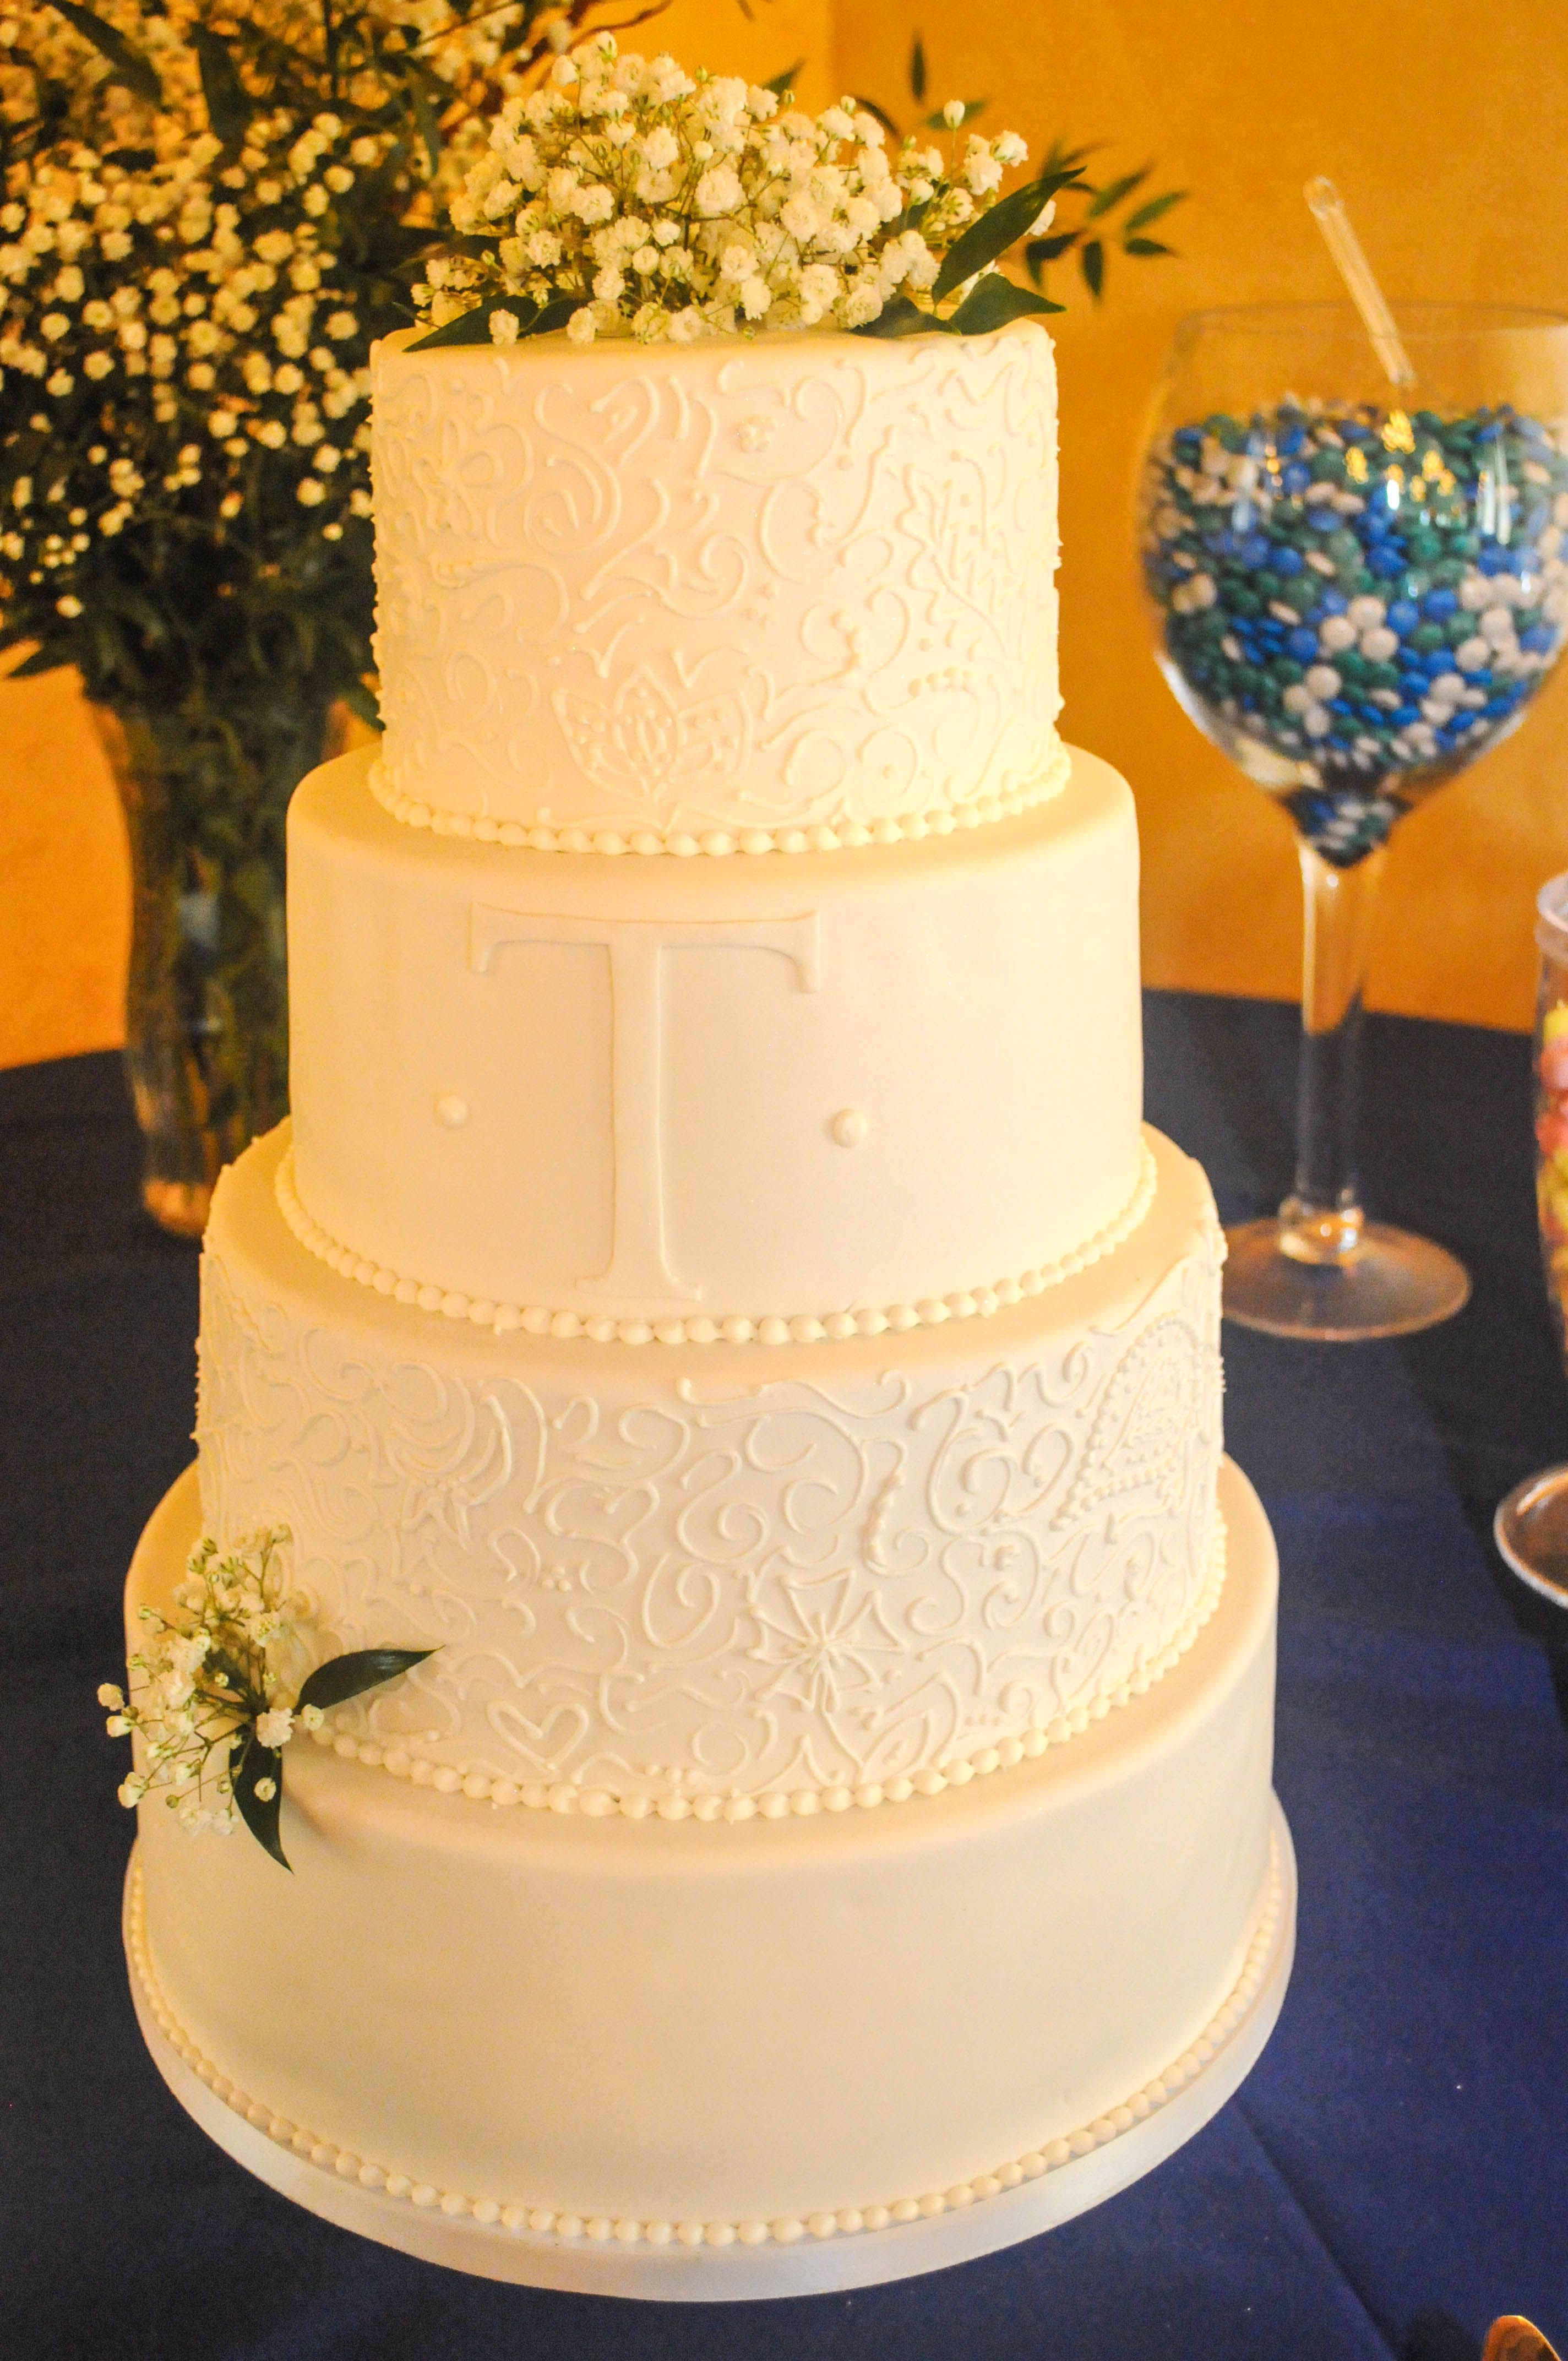 Gorgeous classic cake design with ornate piping sprigs of babyus